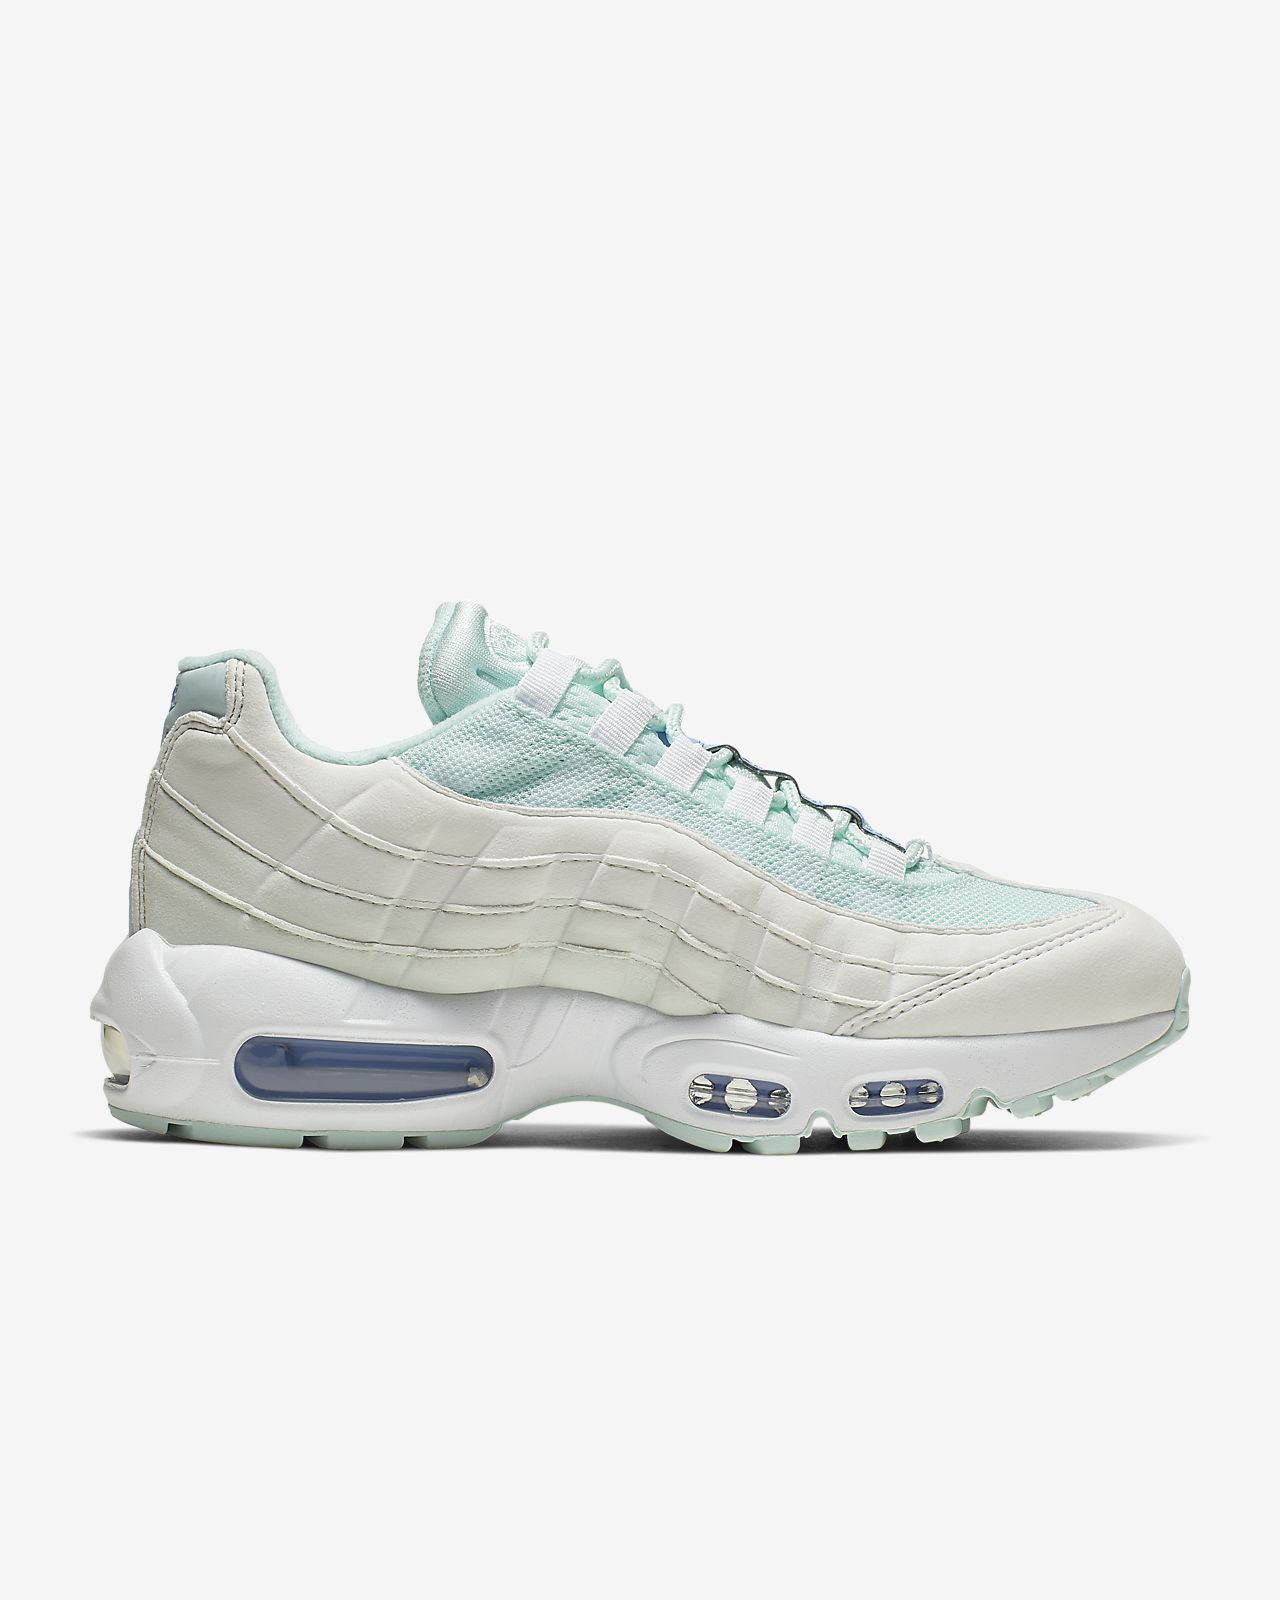 85758842c0 Nike Air Max 95 Women's Shoe. Nike.com